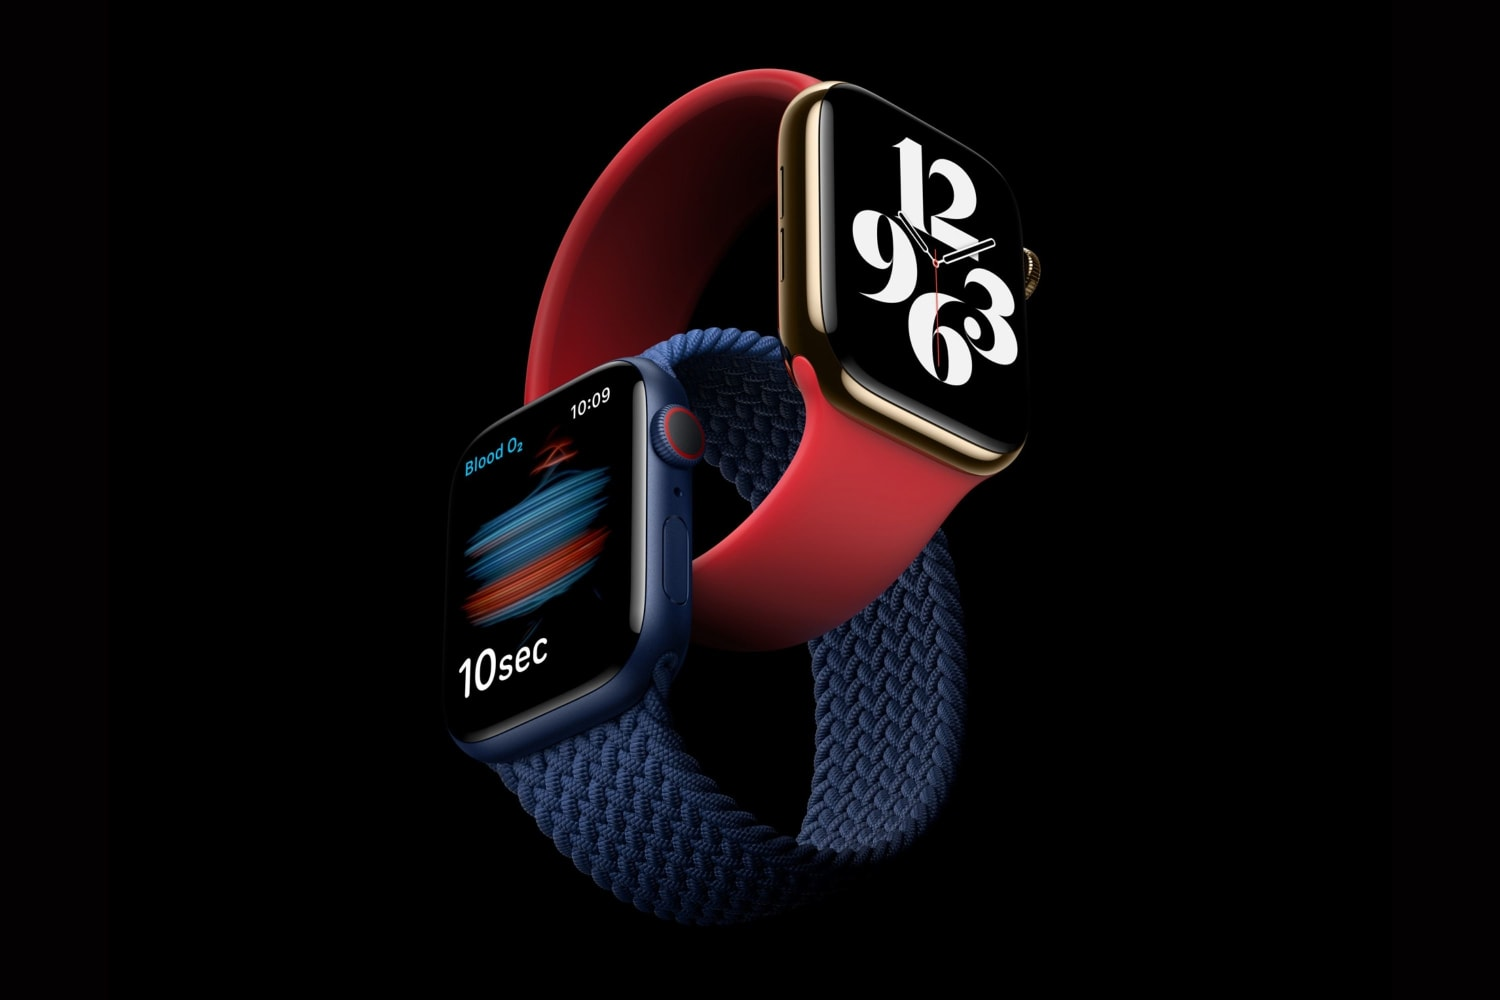 apple-watch-series-6-out-now-with-blood-oxygen-sensor-and-new-cases-and-bands-20200915-1